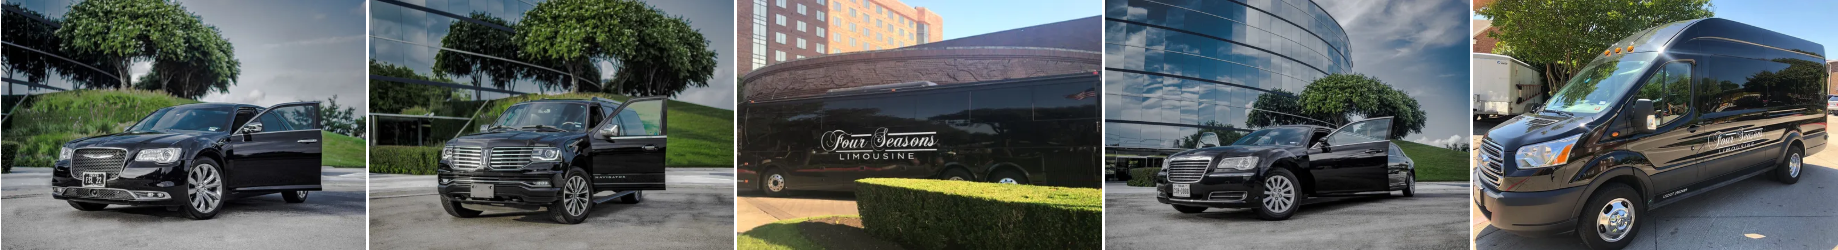 dallas fort worth limousines